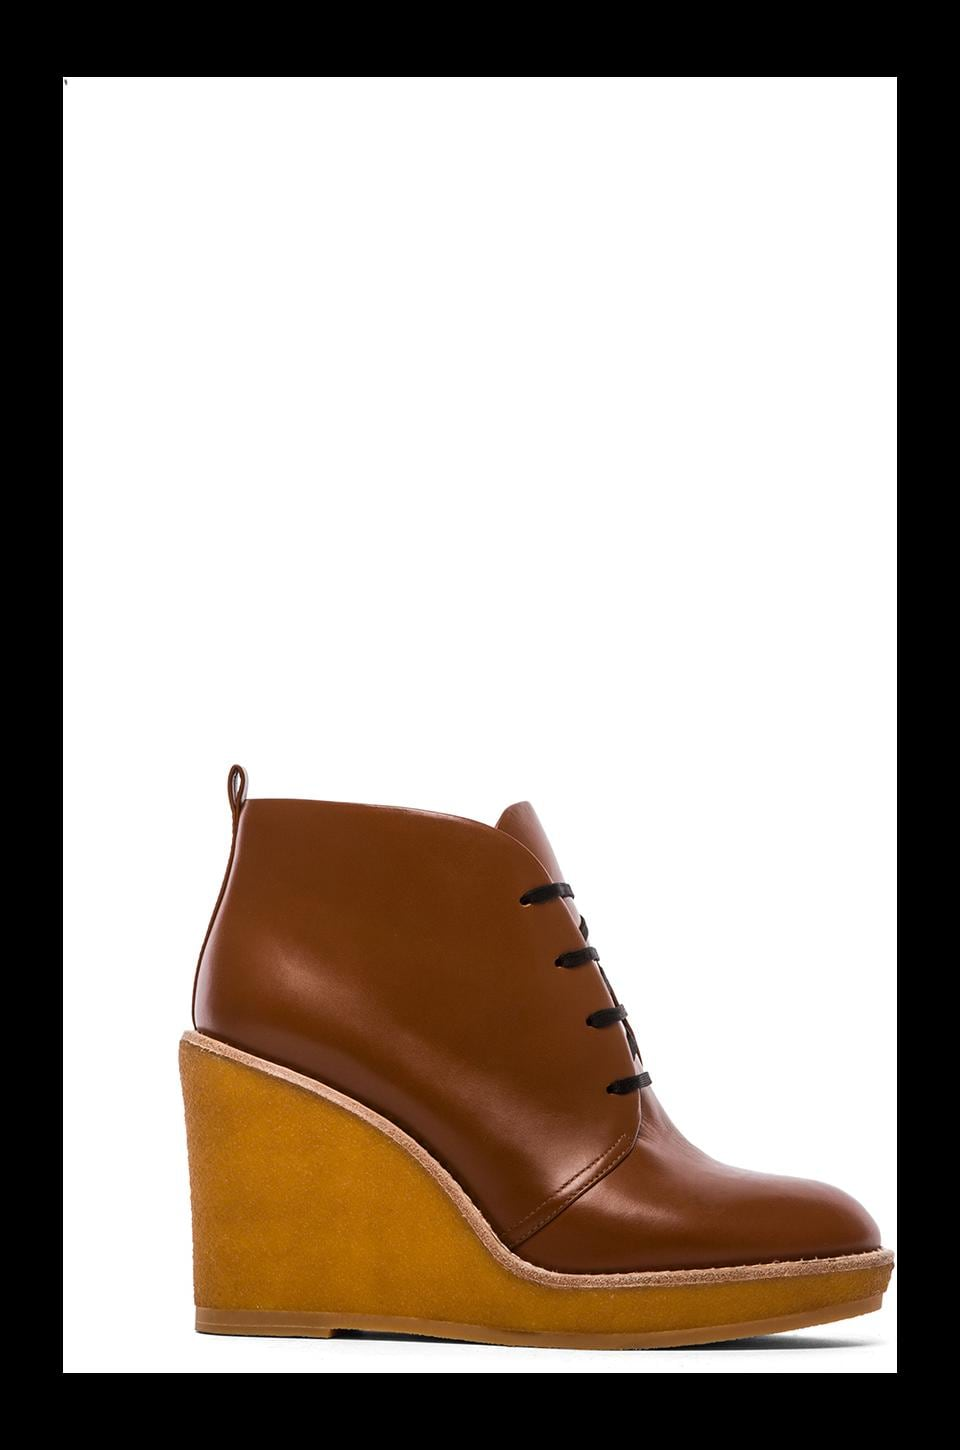 Marc by Marc Jacobs MBMJ Classics Half Calf + Crepe Boot in Tan/Natural